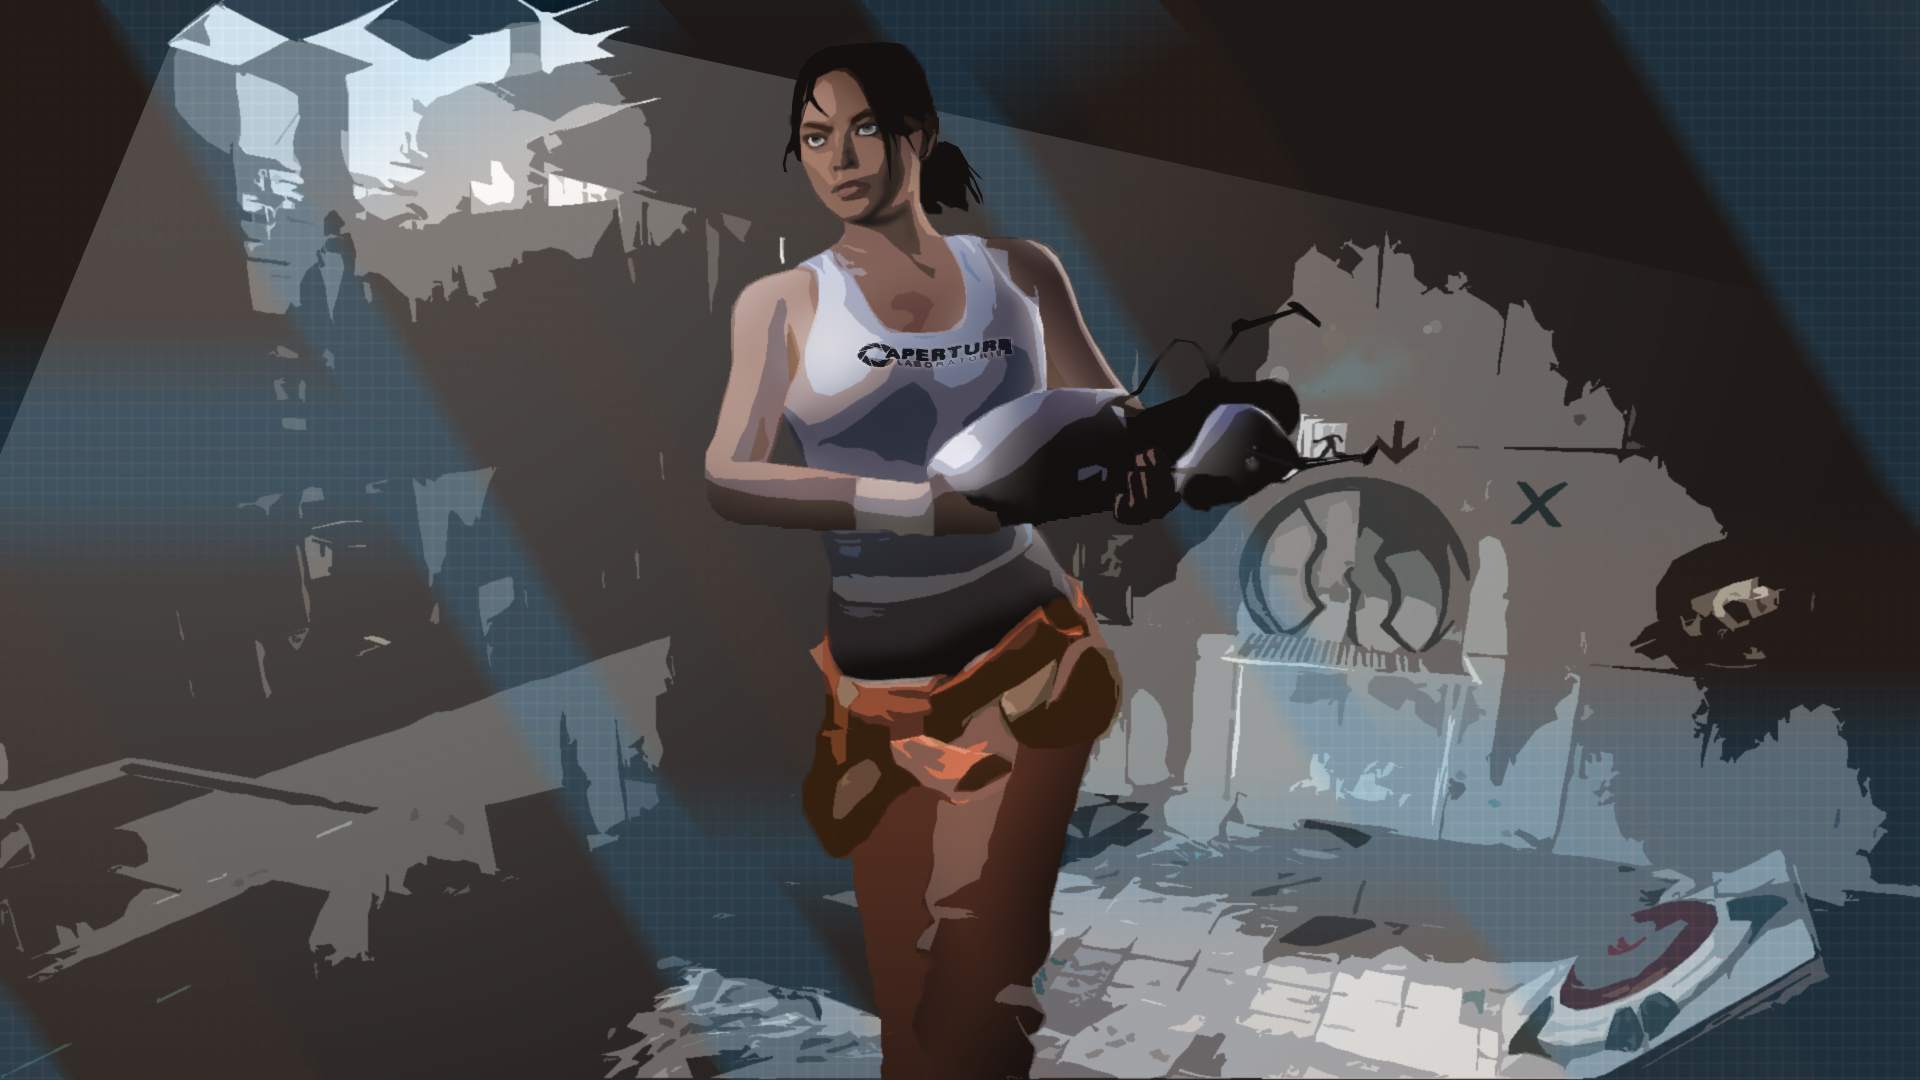 Video Games Portal 2 Chell Valve Corporation Steam